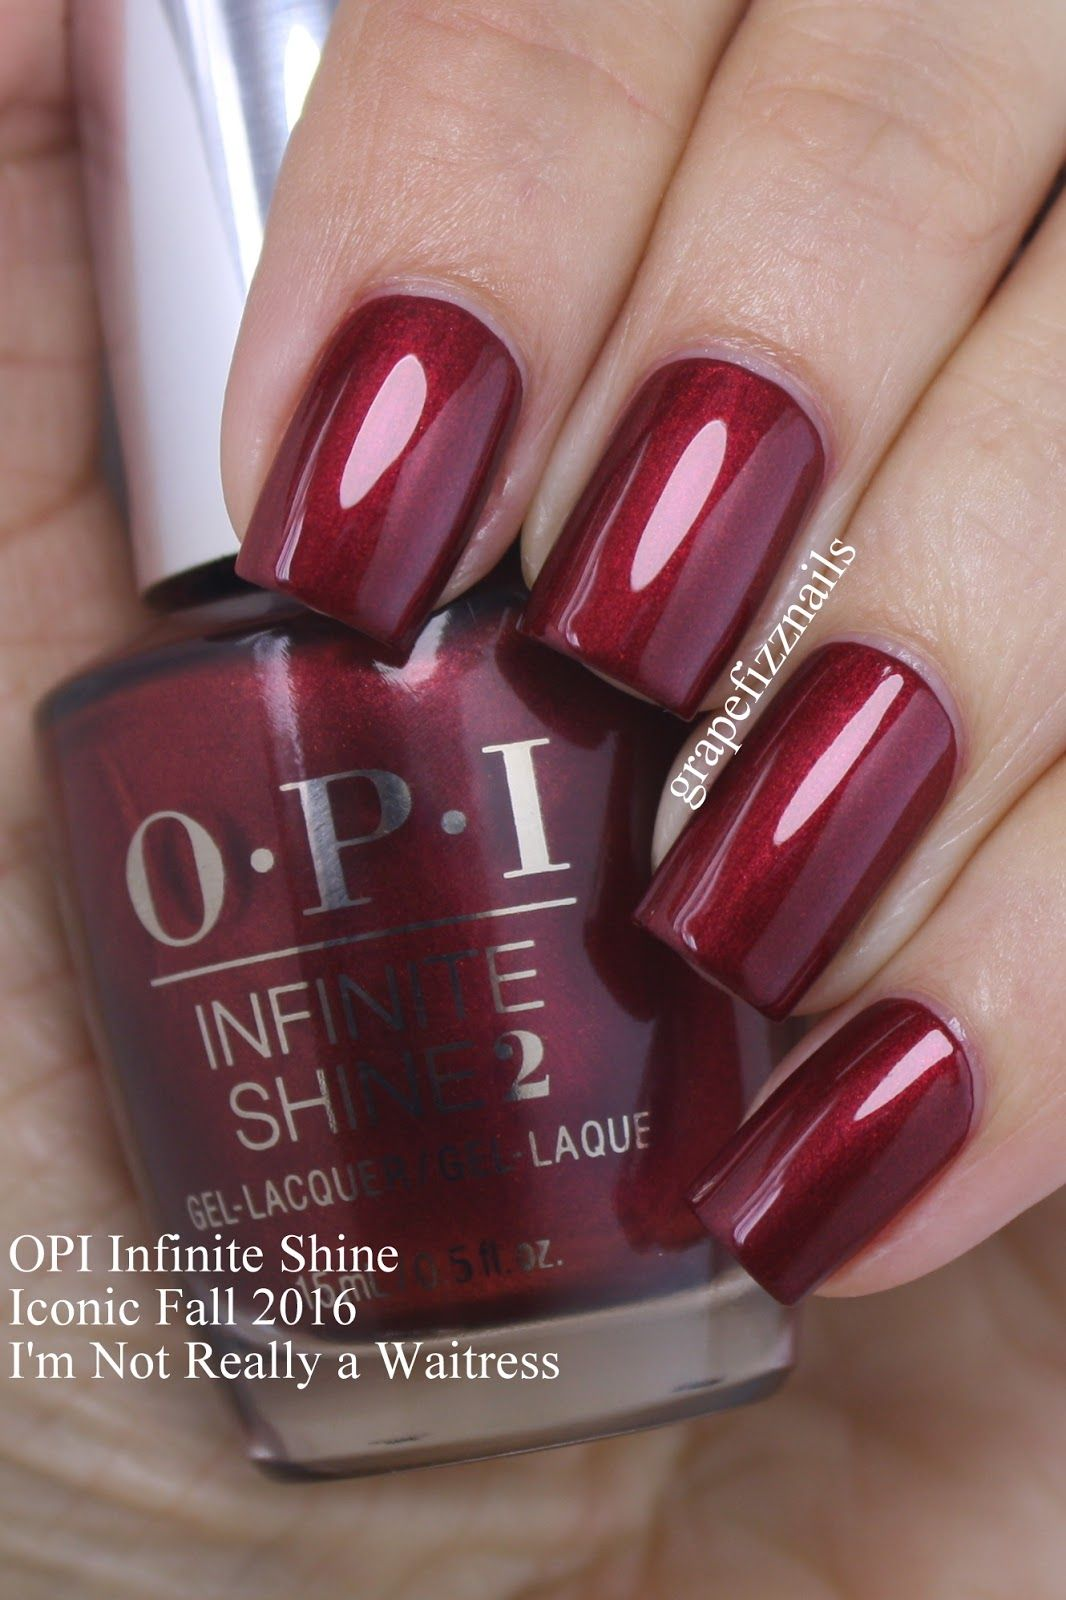 IMG_3892.JPG (1066×1600) | Nails | Pinterest | Make up, OPI and ...